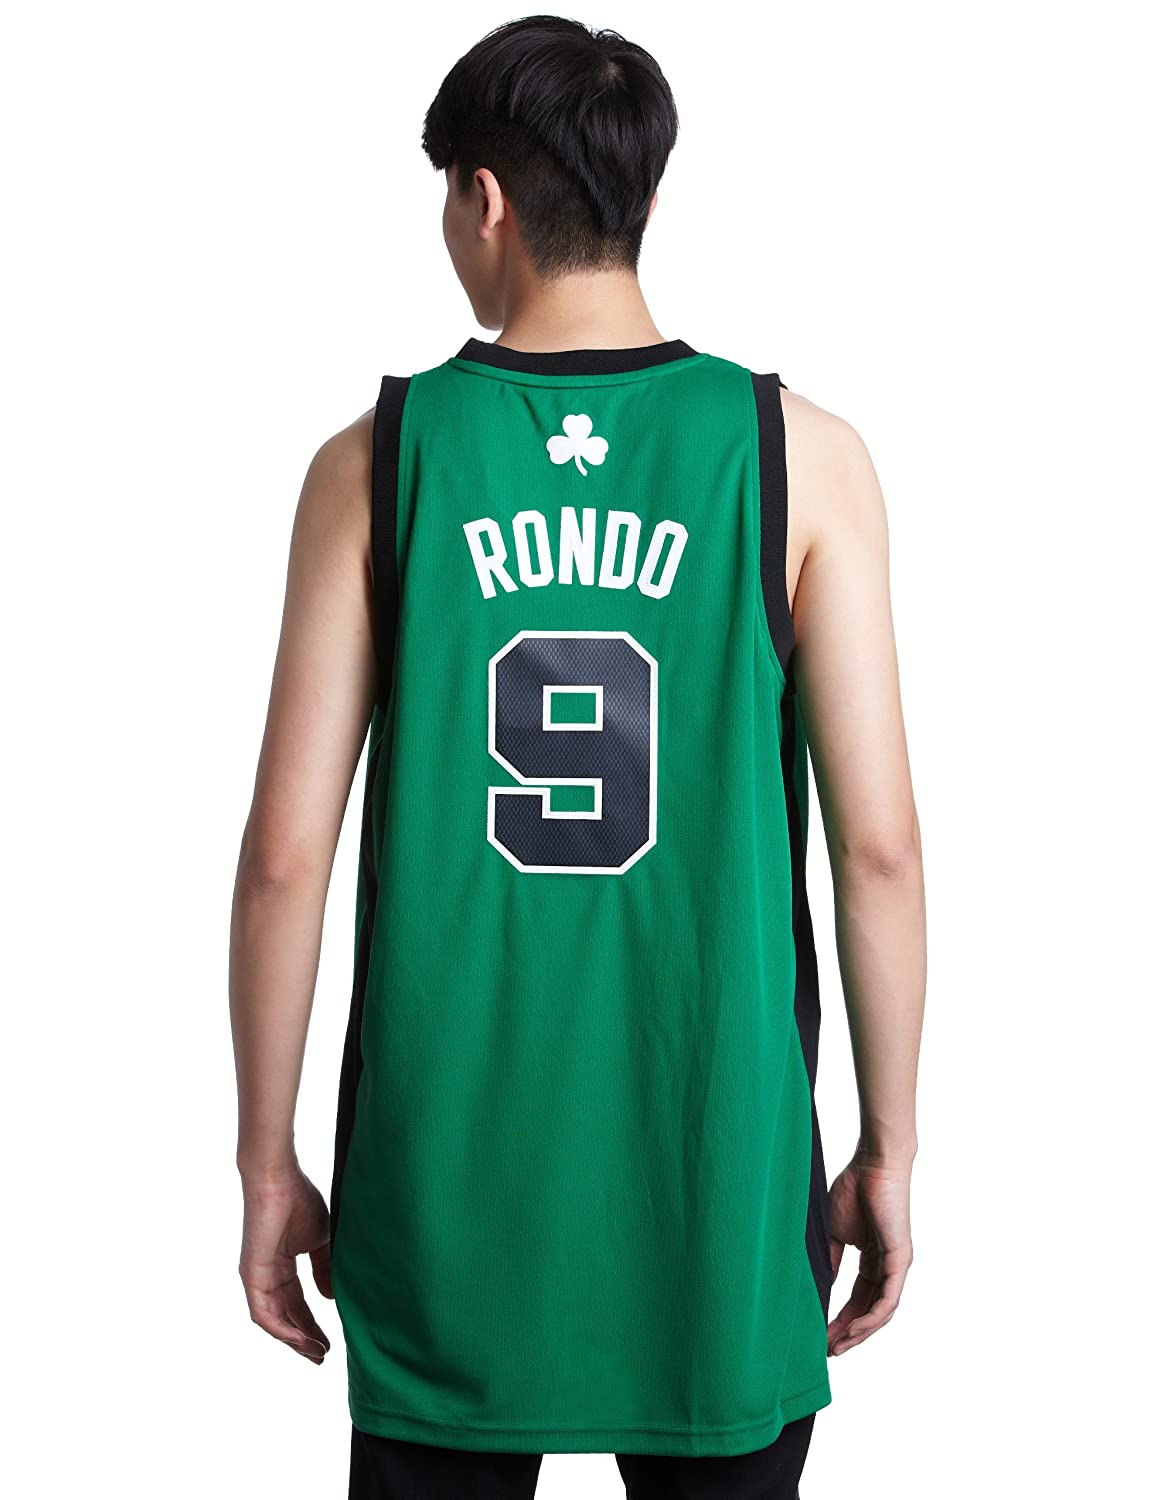 184d54dfea00 Amazon.com   NBA Boston Celtics Rajon Rondo Swingman Jersey